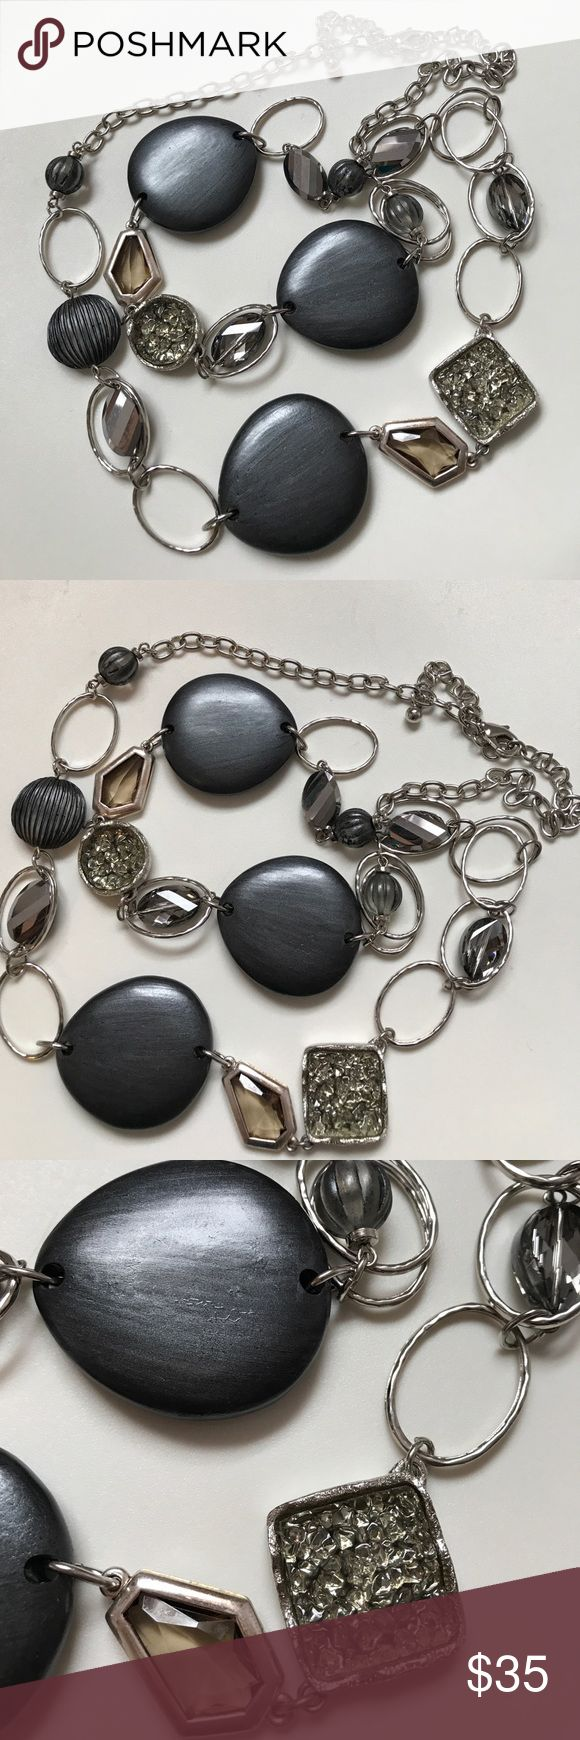 Chico's LONG silver necklace Silver necklace with charcoal - gunmetal colored mirrored beads.  Measures 42 inches long and is adjustable. Chico's Jewelry Necklaces